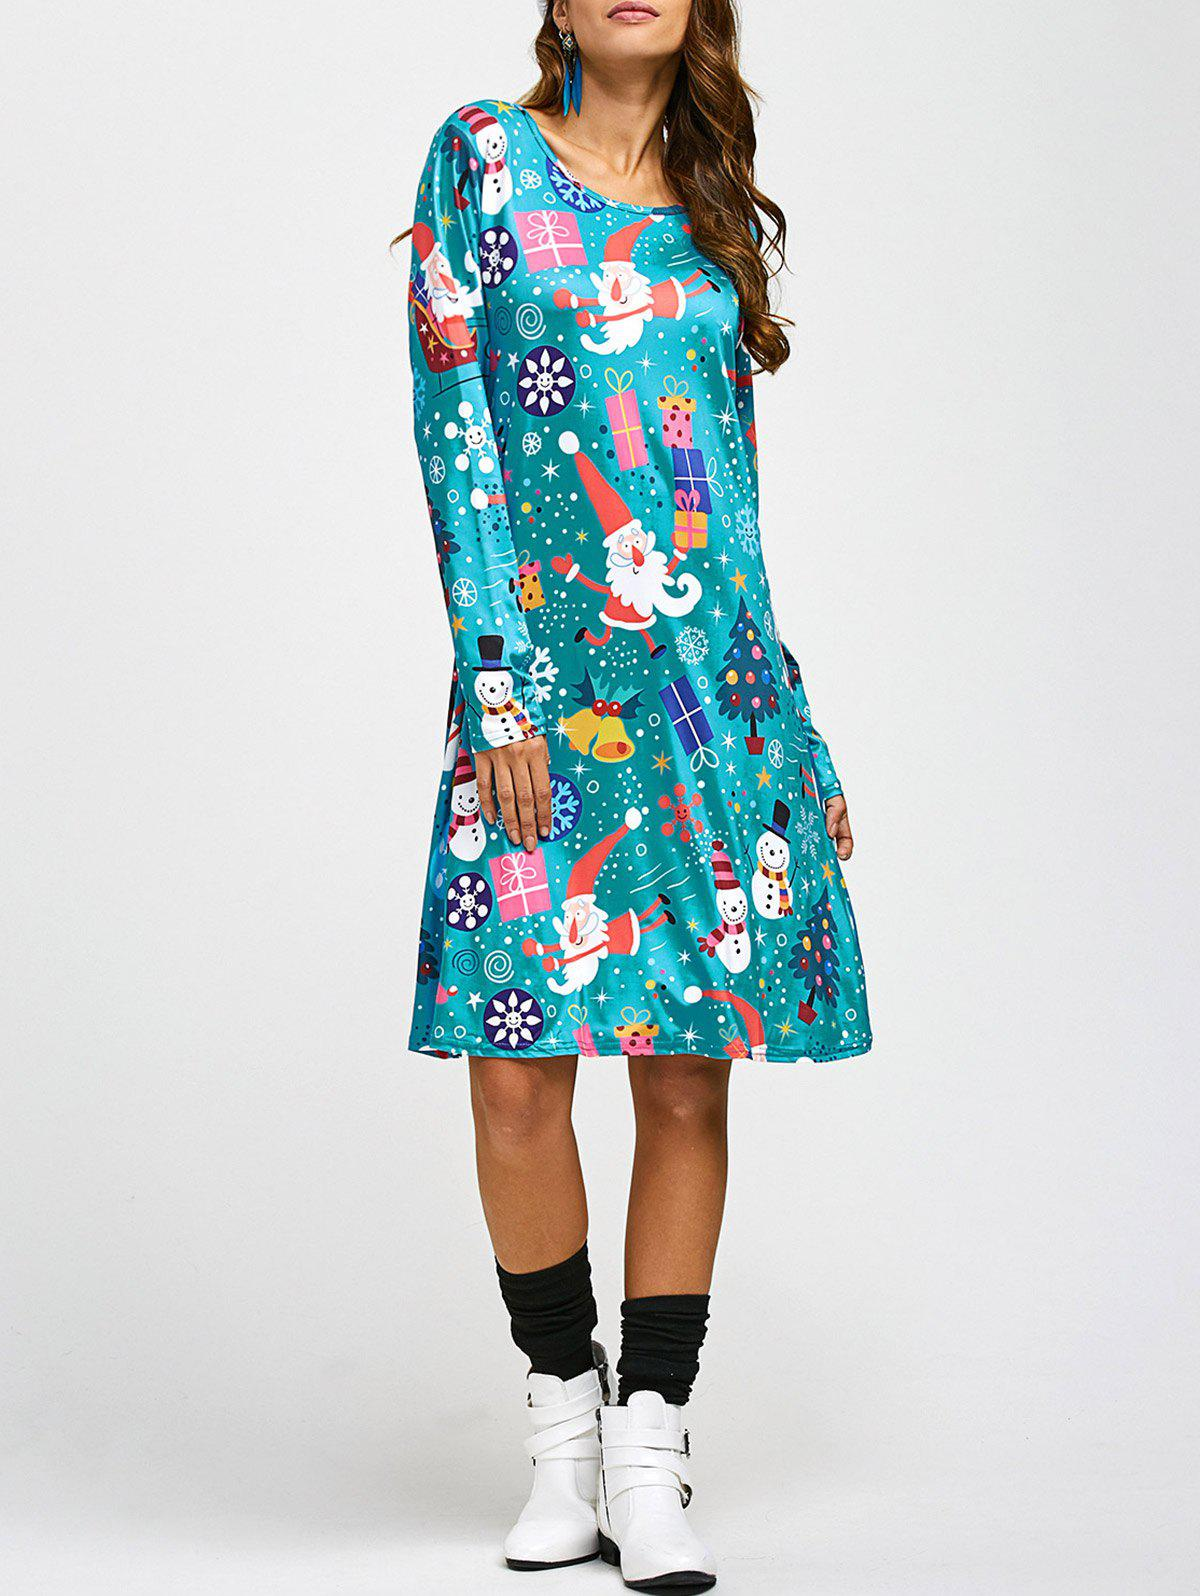 Jewel Neck Father Christmas Cartoon Print Long Sleeve DressWOMEN<br><br>Size: ONE SIZE; Color: BLUE; Style: Cute; Material: Polyester,Spandex; Silhouette: A-Line; Dresses Length: Knee-Length; Neckline: Jewel Neck; Sleeve Length: Long Sleeves; Pattern Type: Character; With Belt: No; Season: Fall,Winter; Weight: 0.570kg; Package Contents: 1 x Dress;